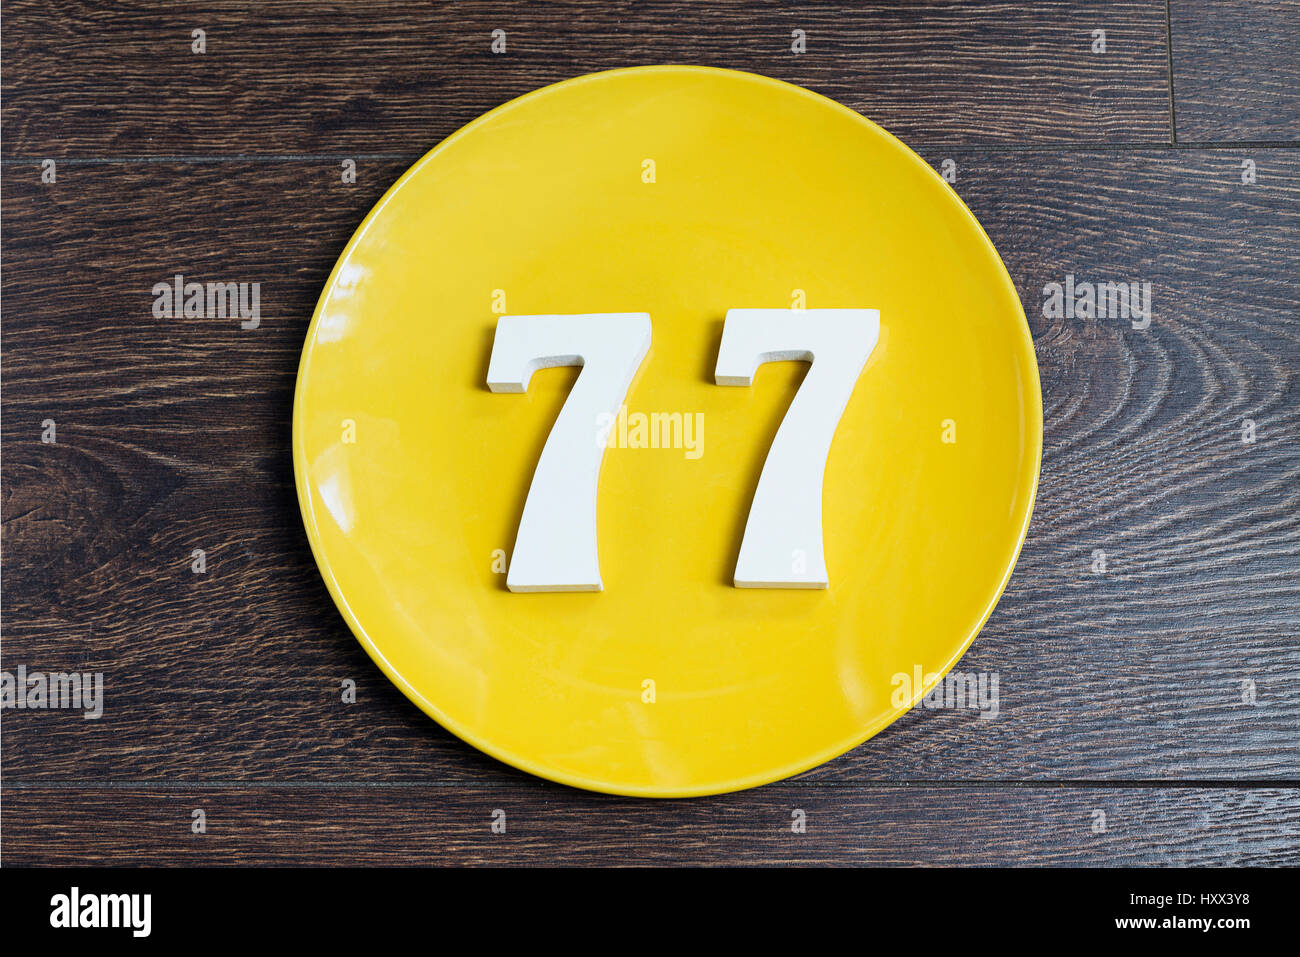 The number seventy-seven on the yellow plate and brown background. - Stock Image